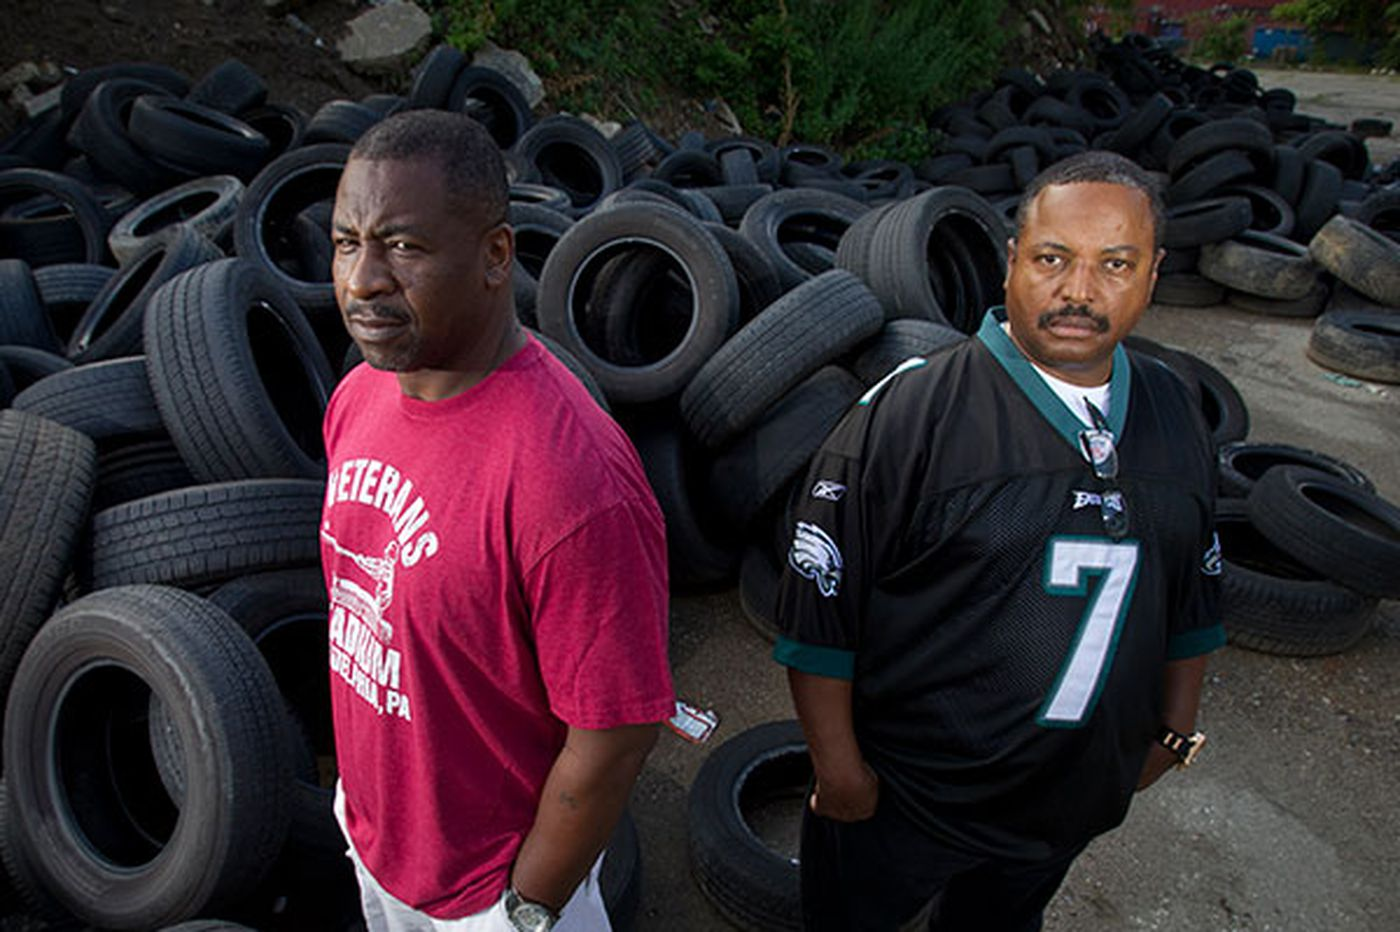 Undercover cop fights Philly's illegal dumping epidemic